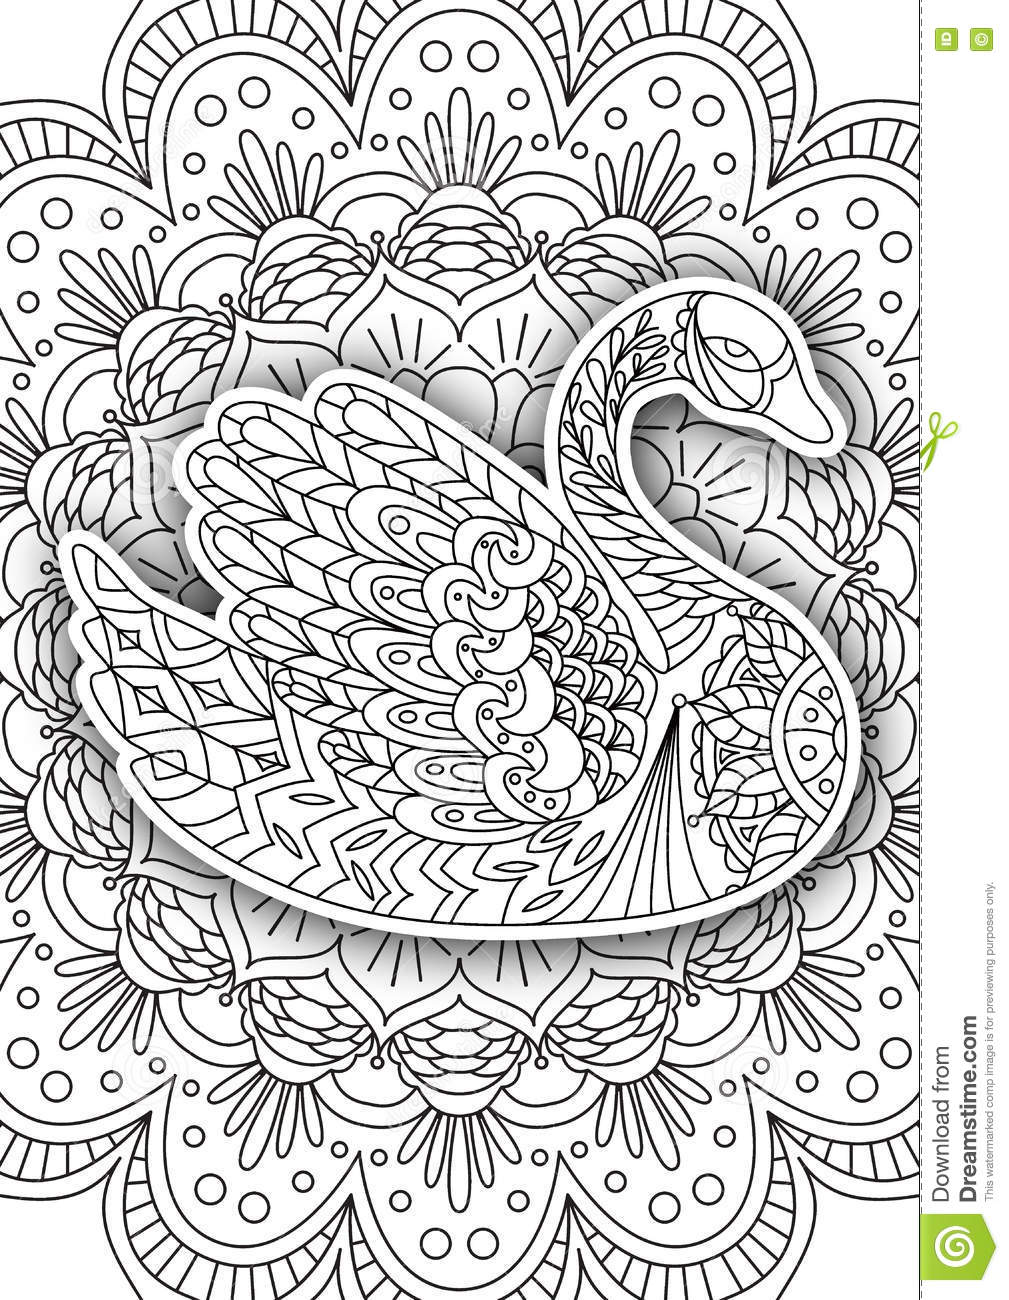 Coloring Book For Adults Printable Pdf